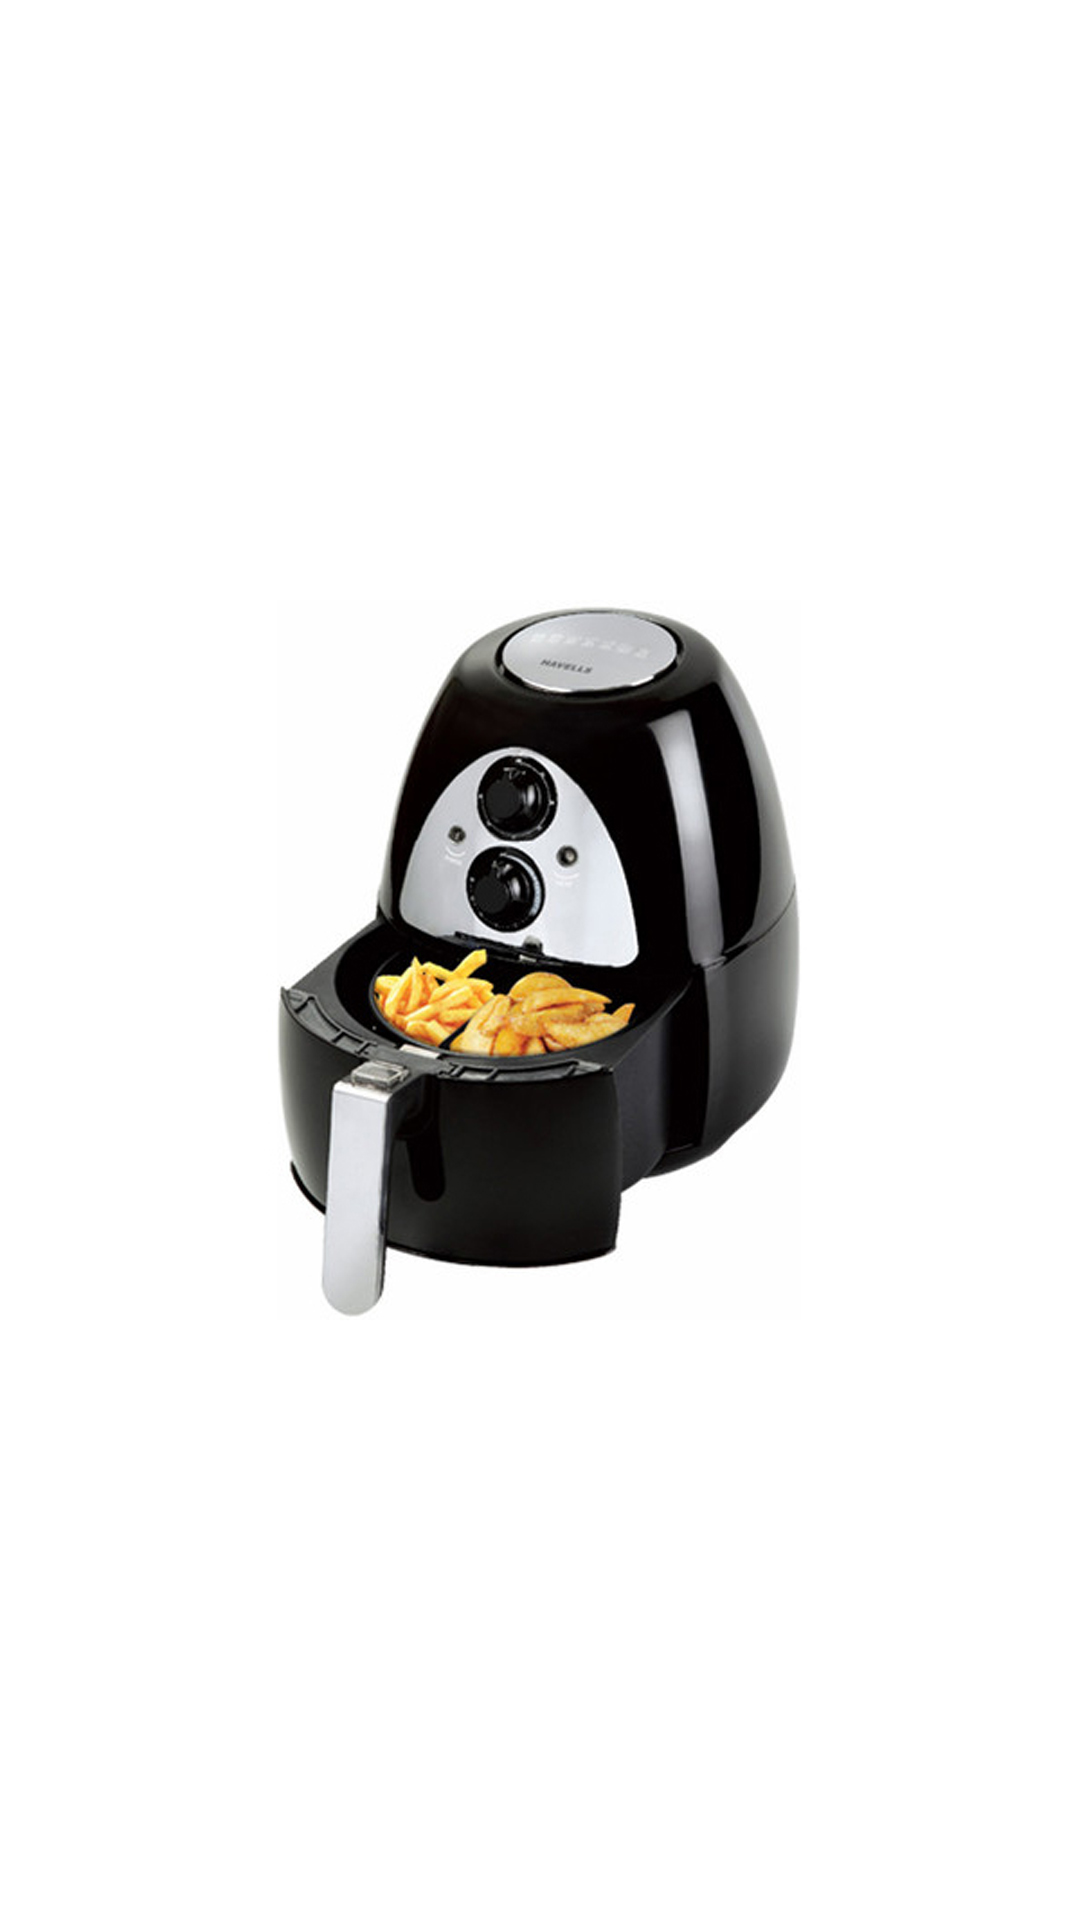 Havells Prolife 2 Litre Air Fryer